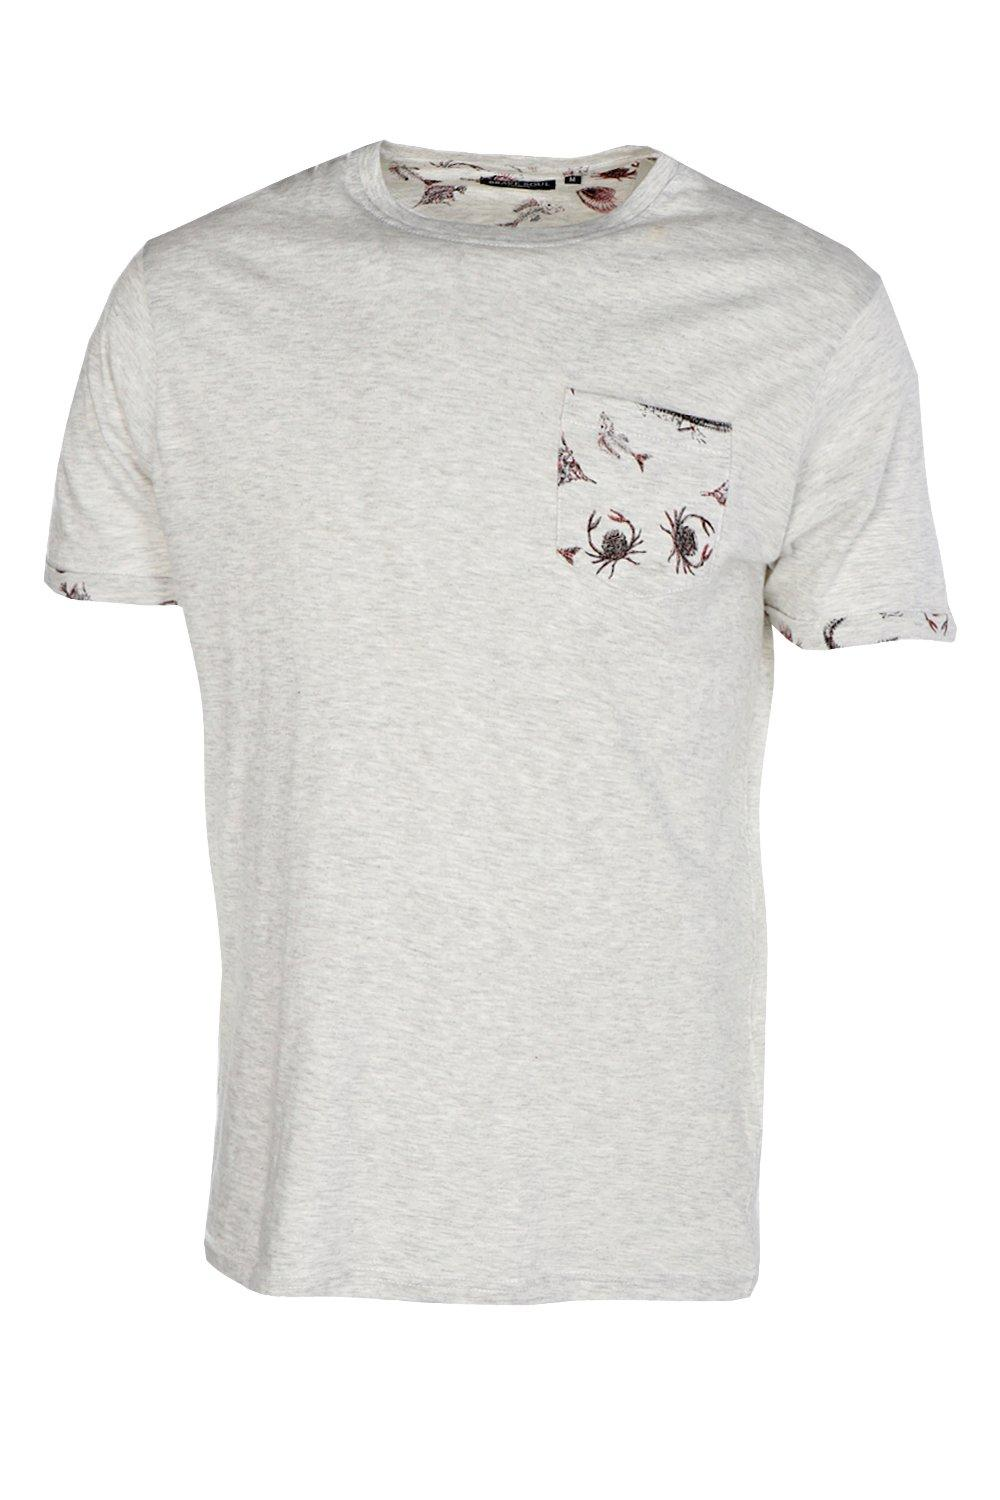 Boohoo mens pocket print t shirt ebay for Pocket t shirt printing